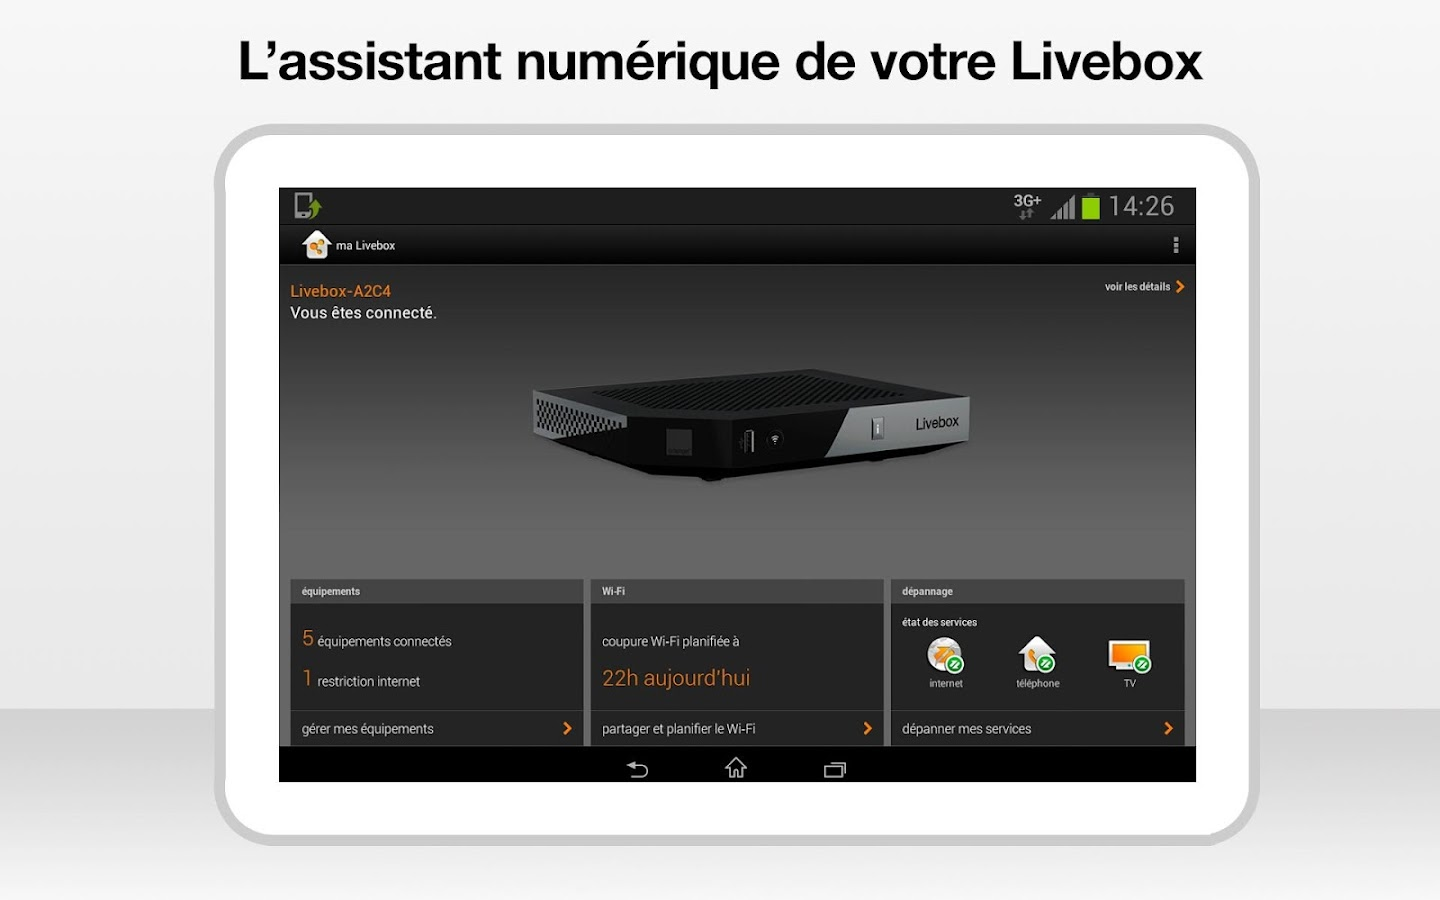 ma Livebox - screenshot